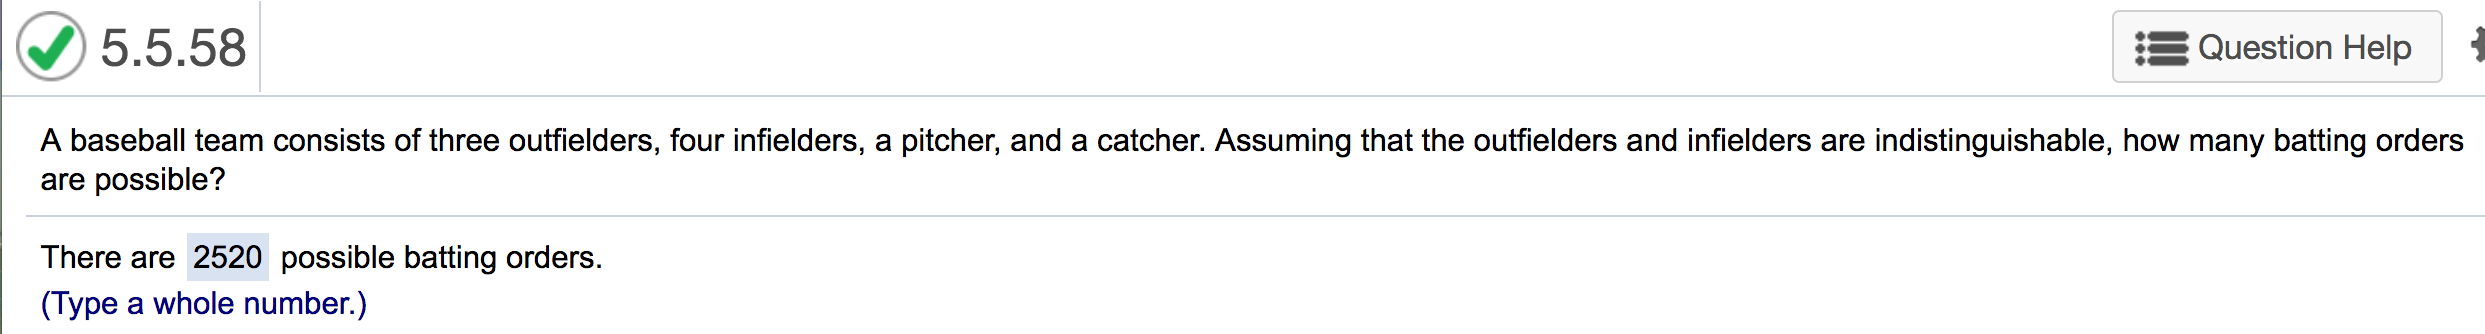 5.5.58 Question Help A baseball team consists of three outfielders, four infielders, a pitcher, and a catcher. Assuming that the outfielders and infielders are indistinguishable, how many batting orders are possible? There are 2520 possible batting orders. (Type a whole number.)